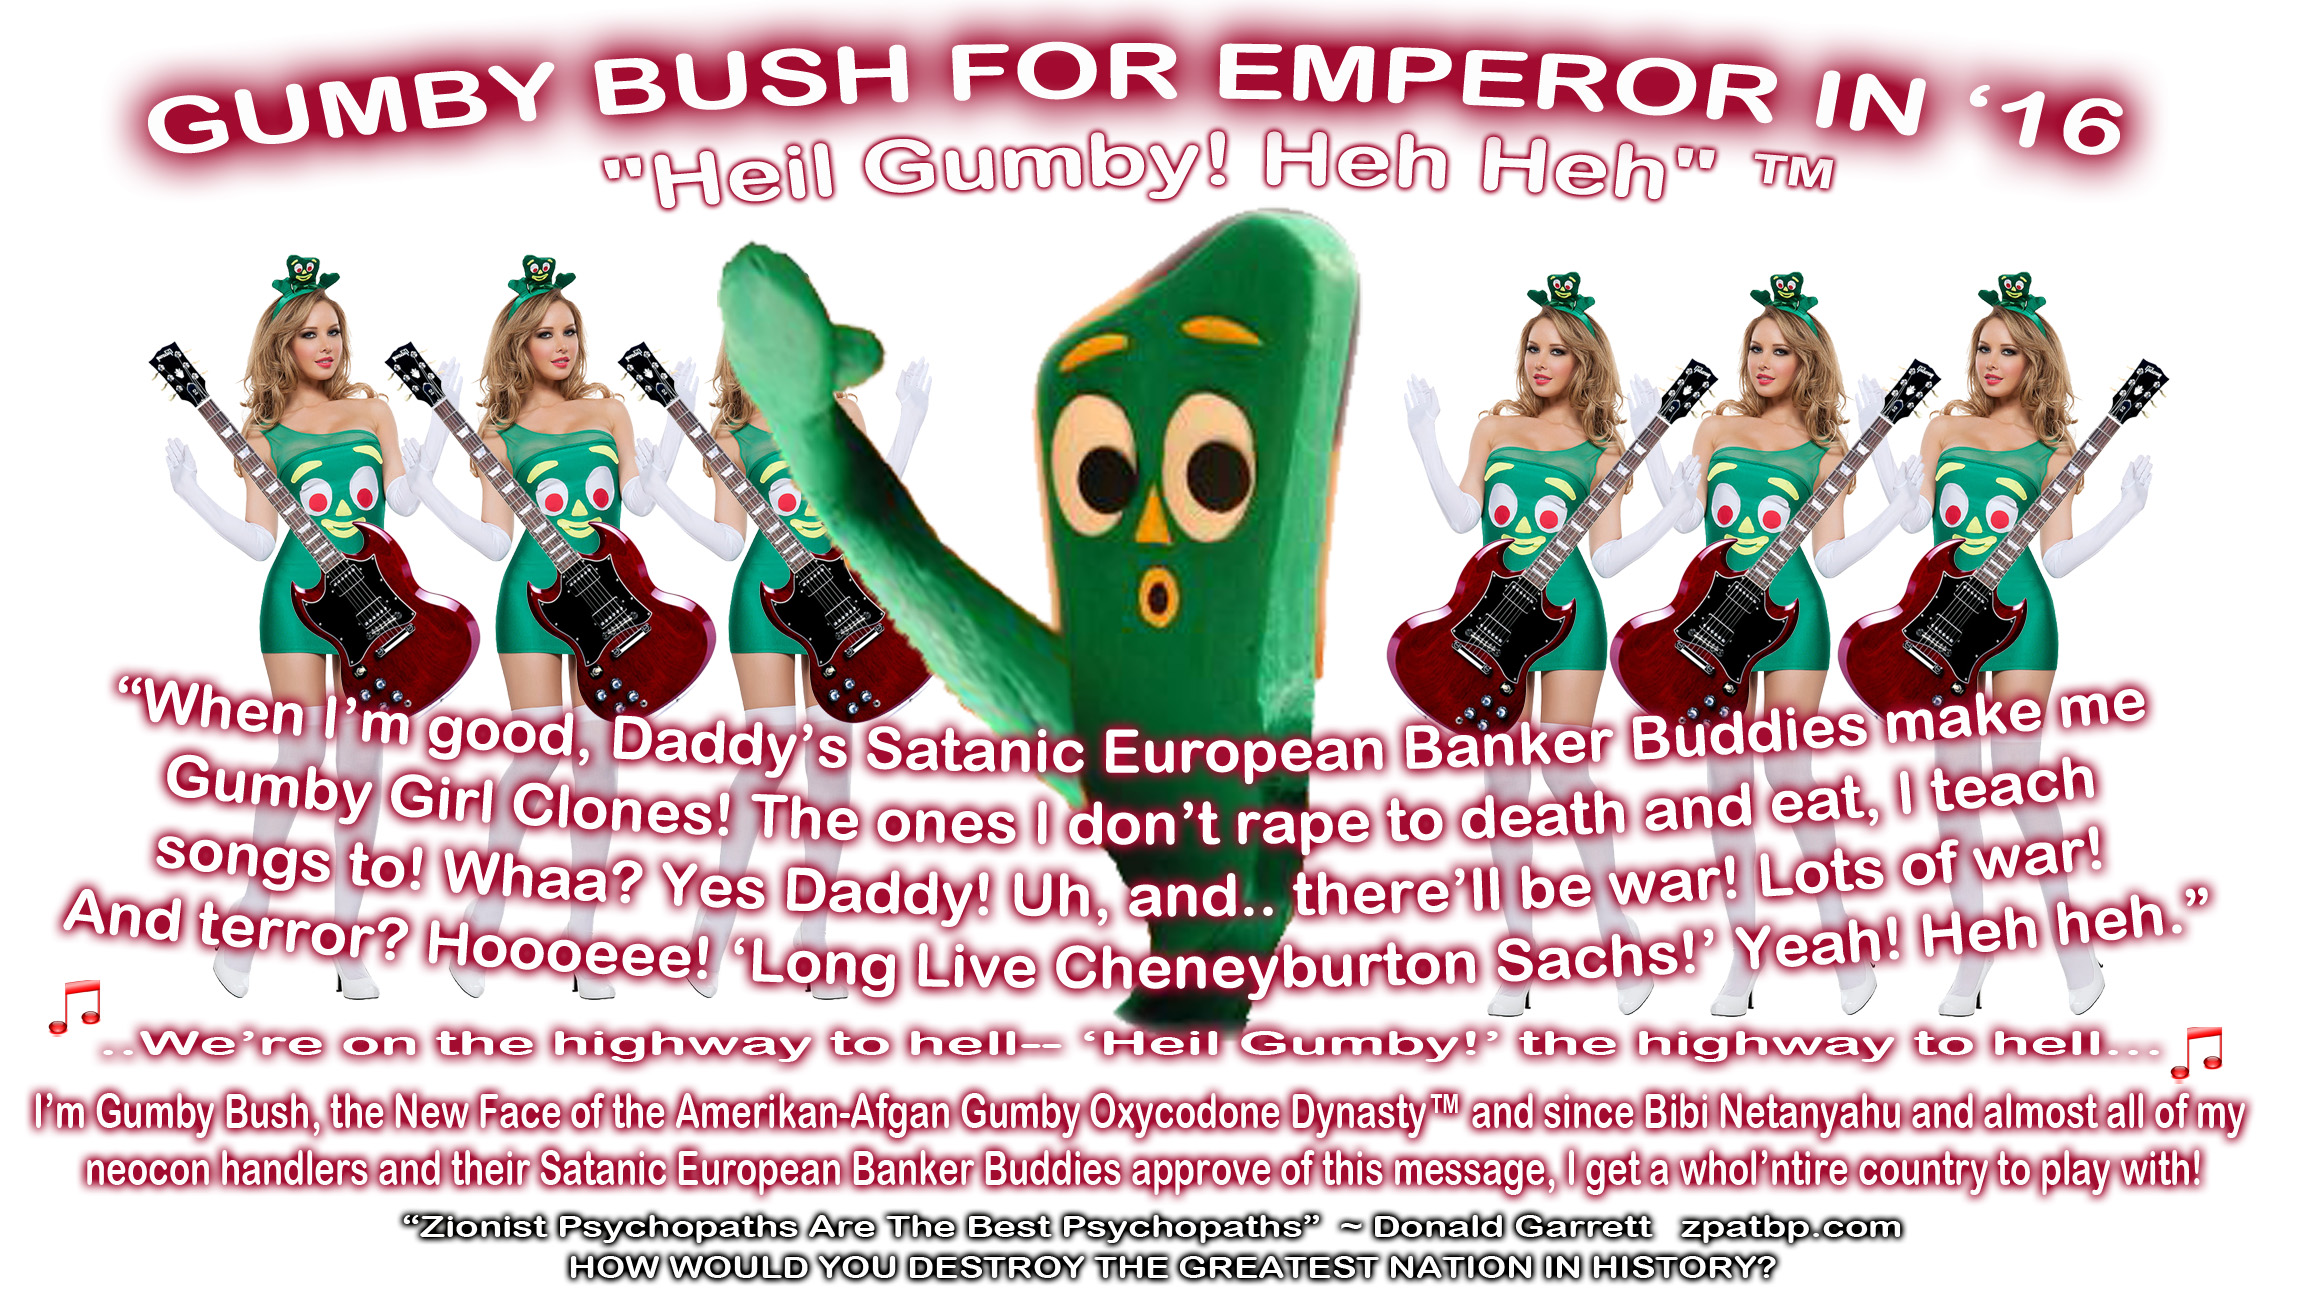 Gumby Girls! GUMBY BUSH FOR EMPEROR IN '16